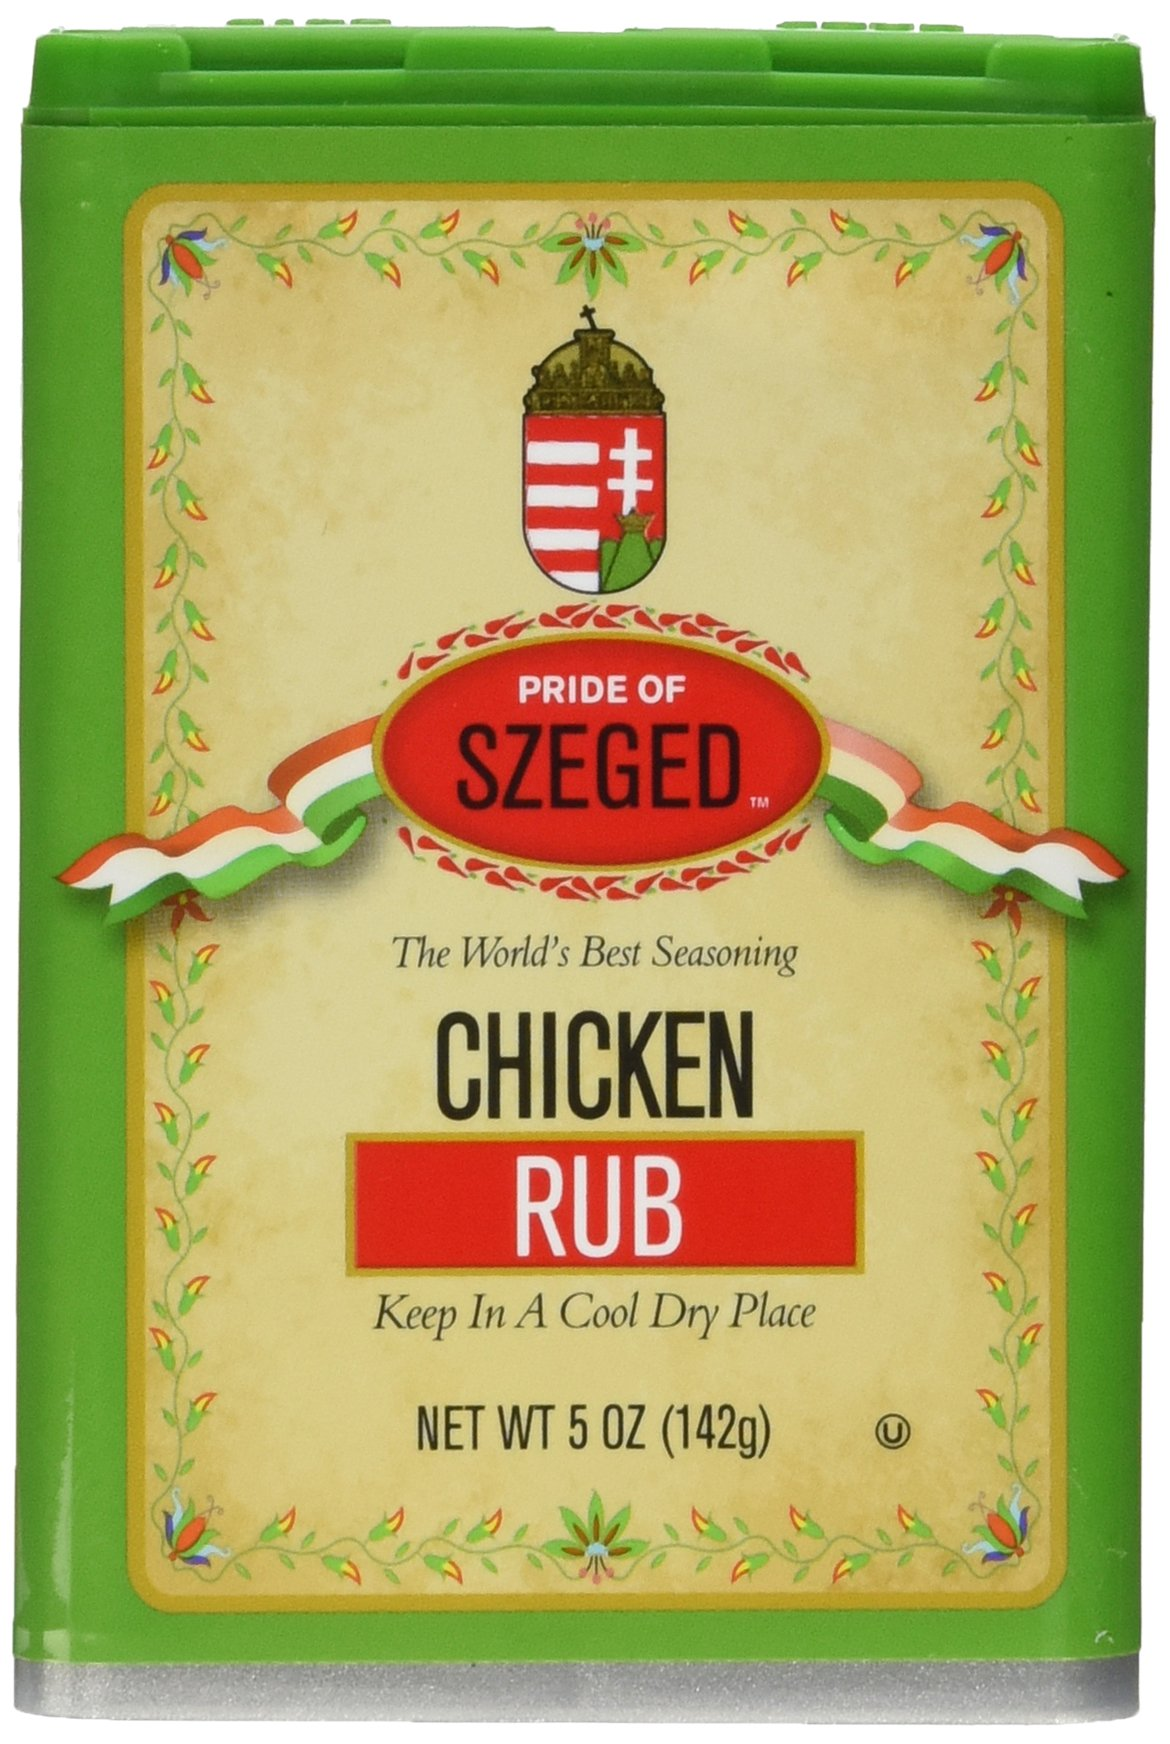 Szeged Chicken Rub Seasoning (szeged) 5oz